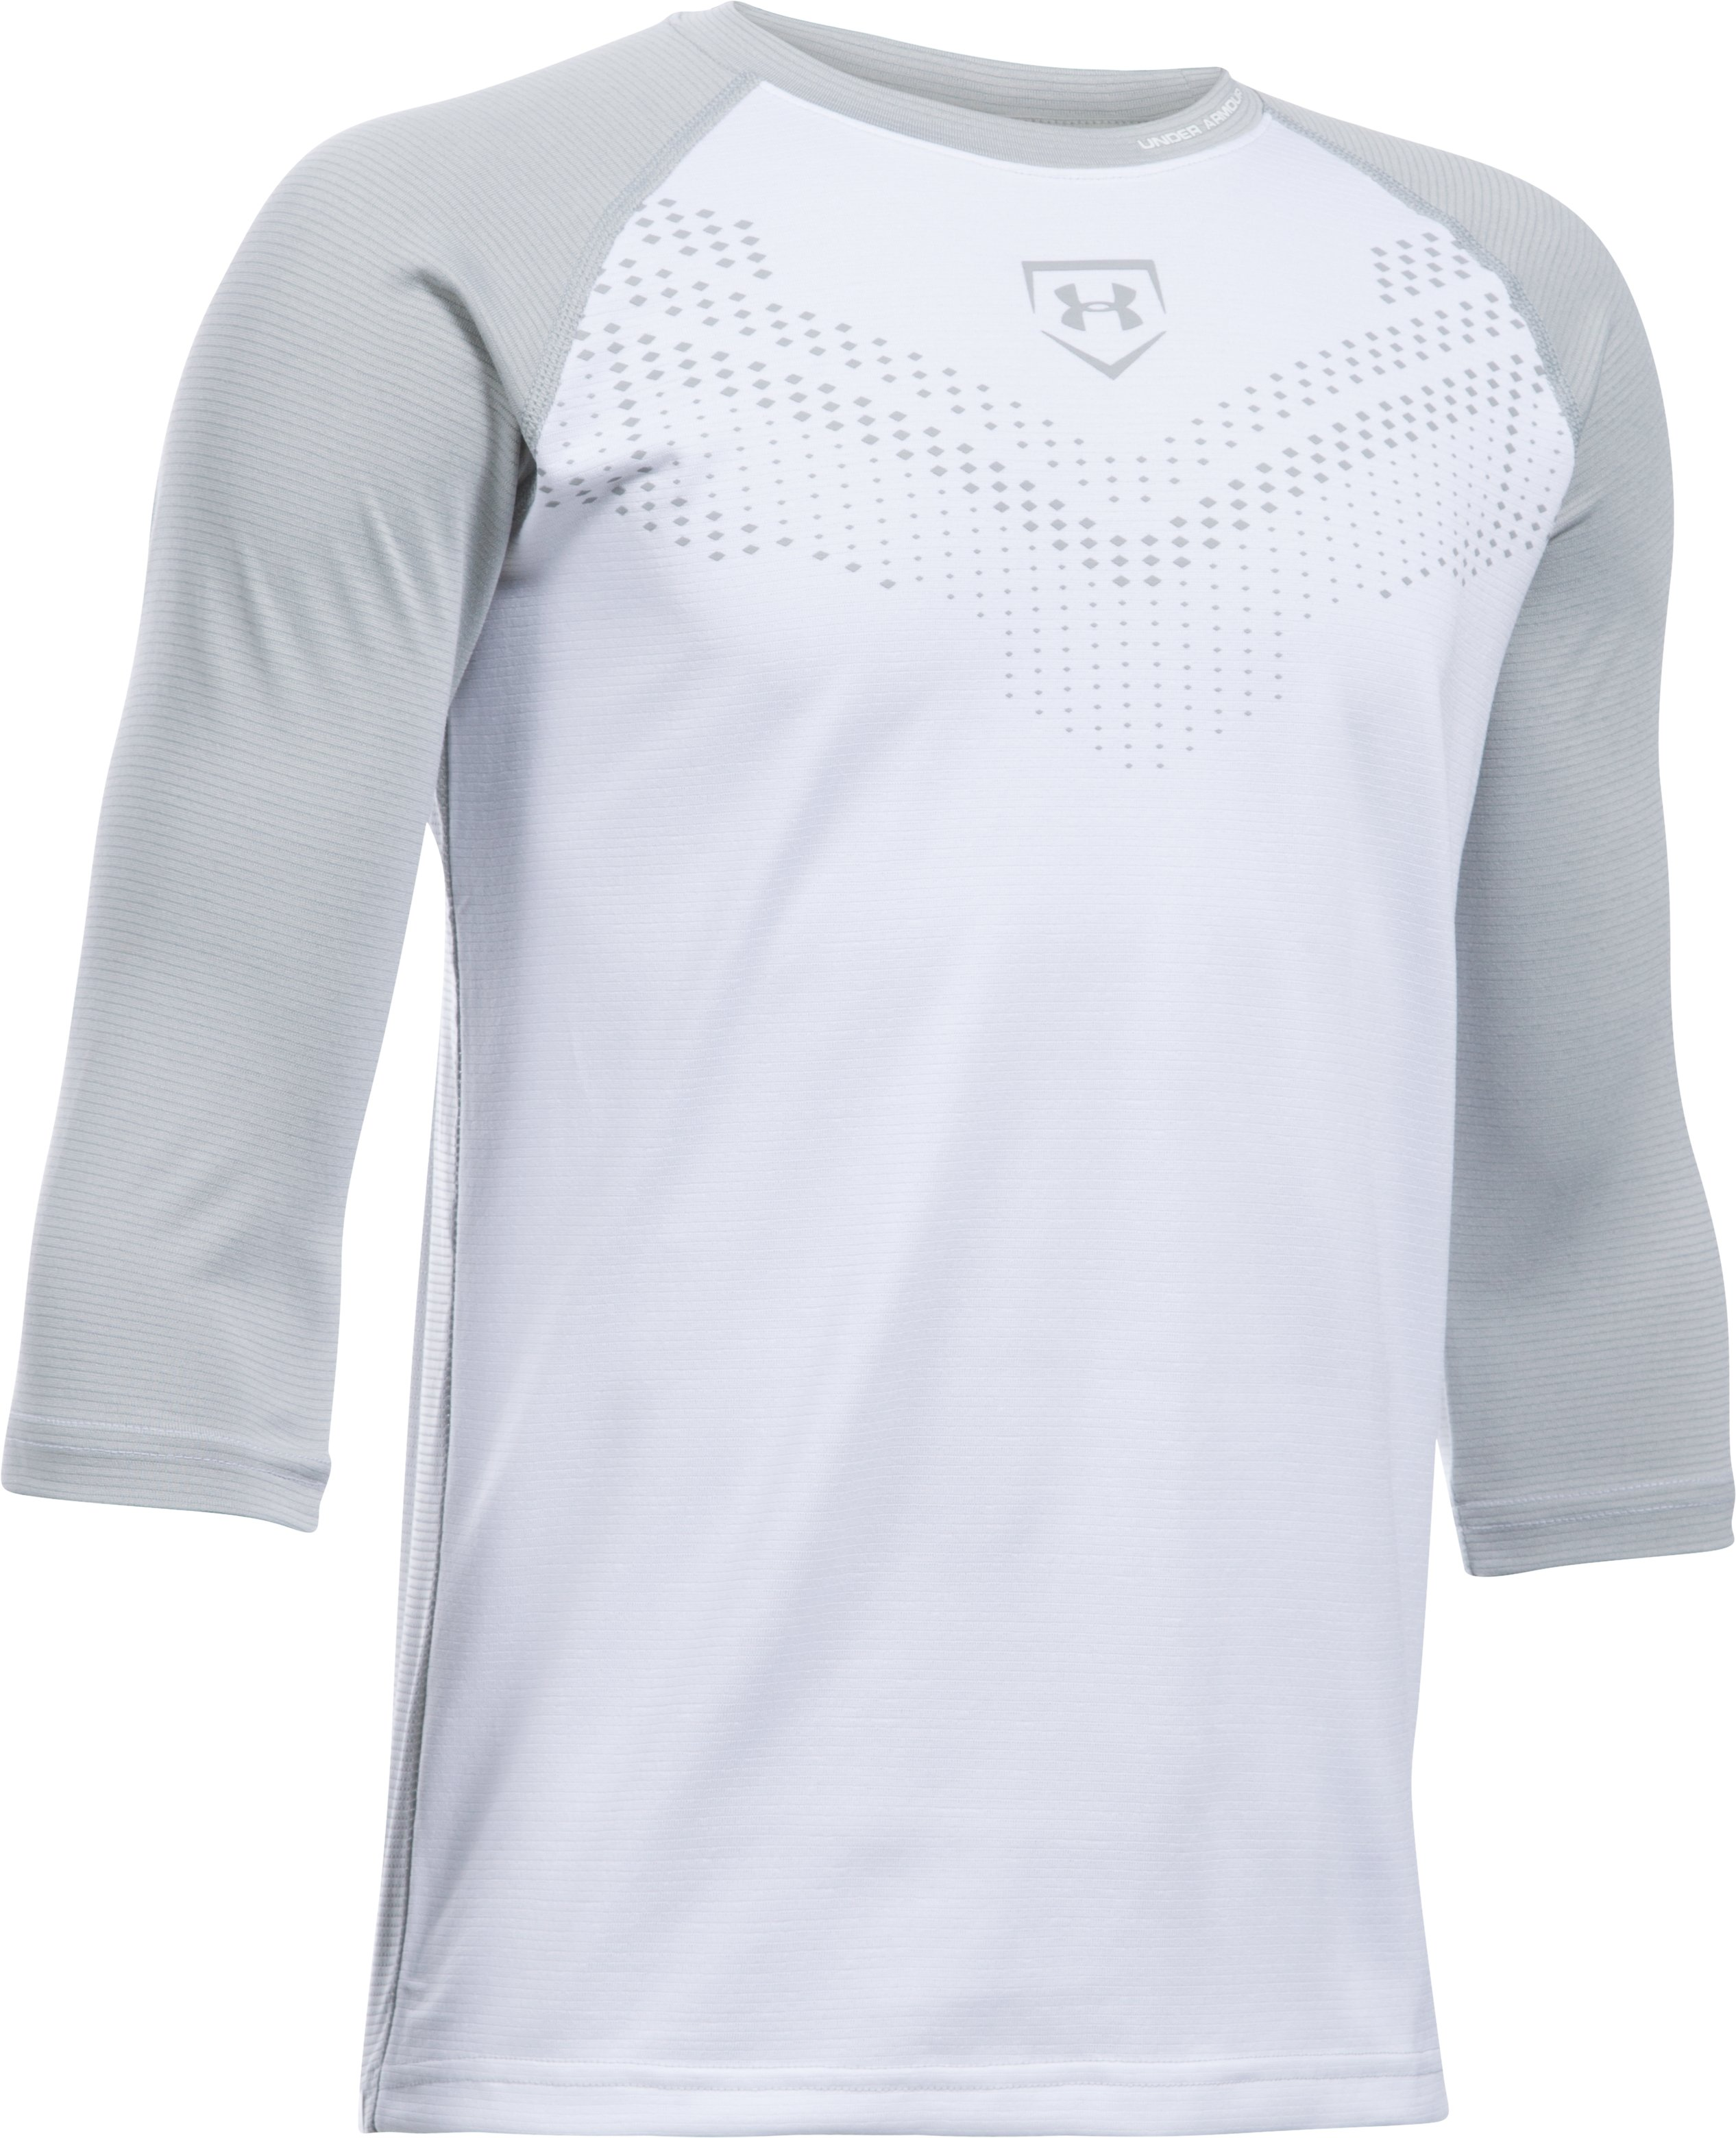 Boys' UA Undeniable ¾ Sleeve T, White, undefined